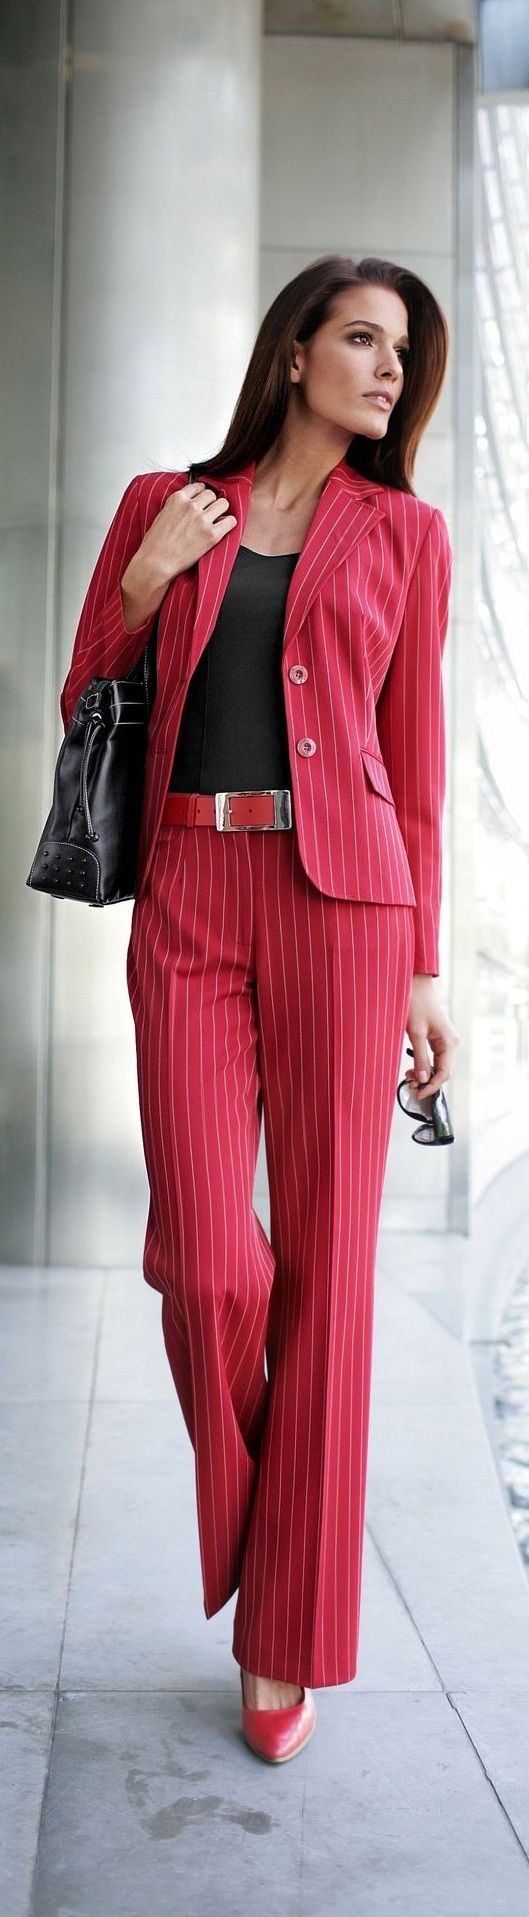 ☆ ℒℴvℯ ☆ pinstripe red